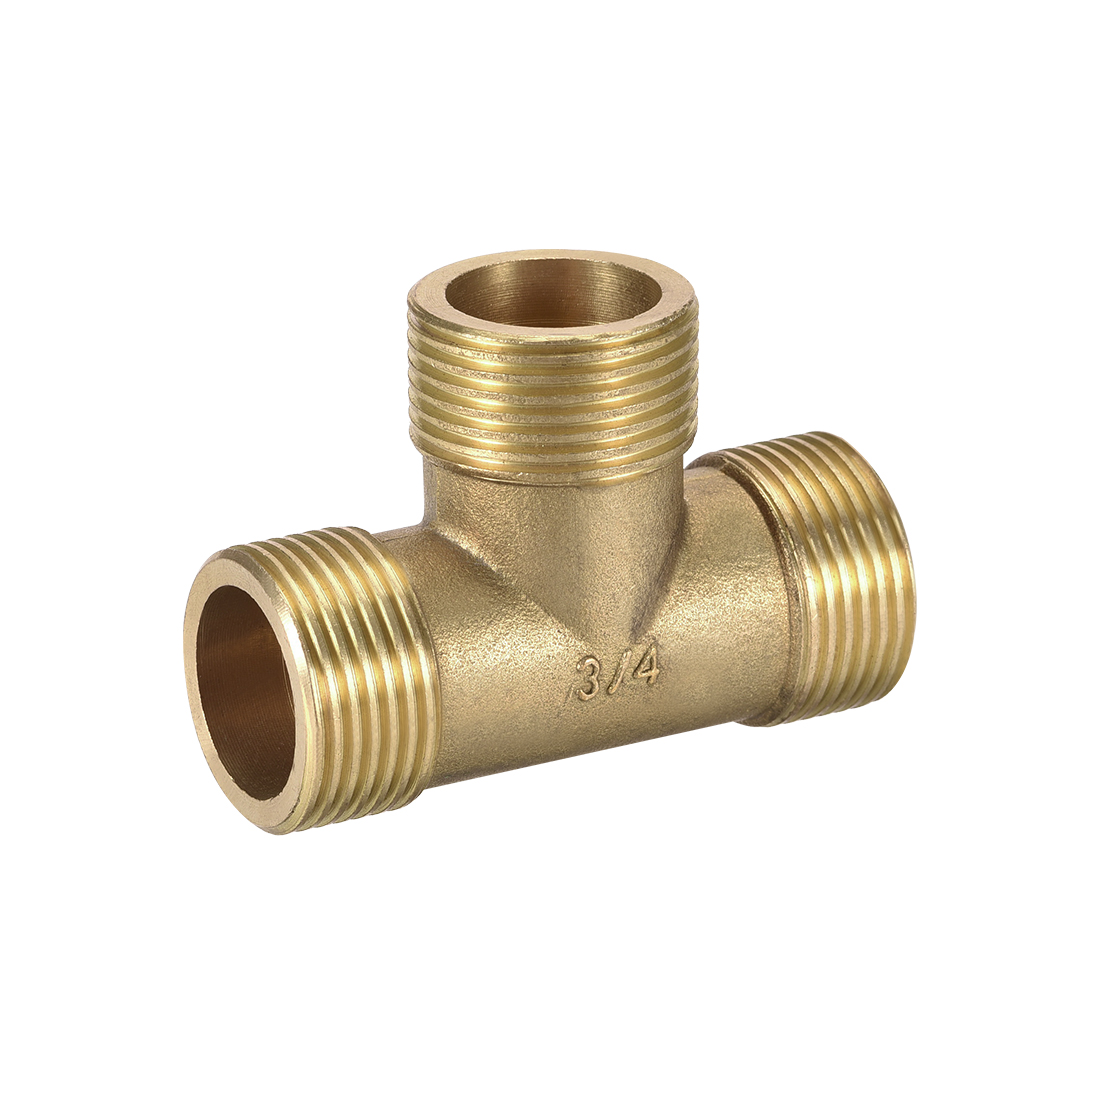 Brass Tee Pipe Fitting 3/4BSP Male Thread T Shaped Connector Coupler